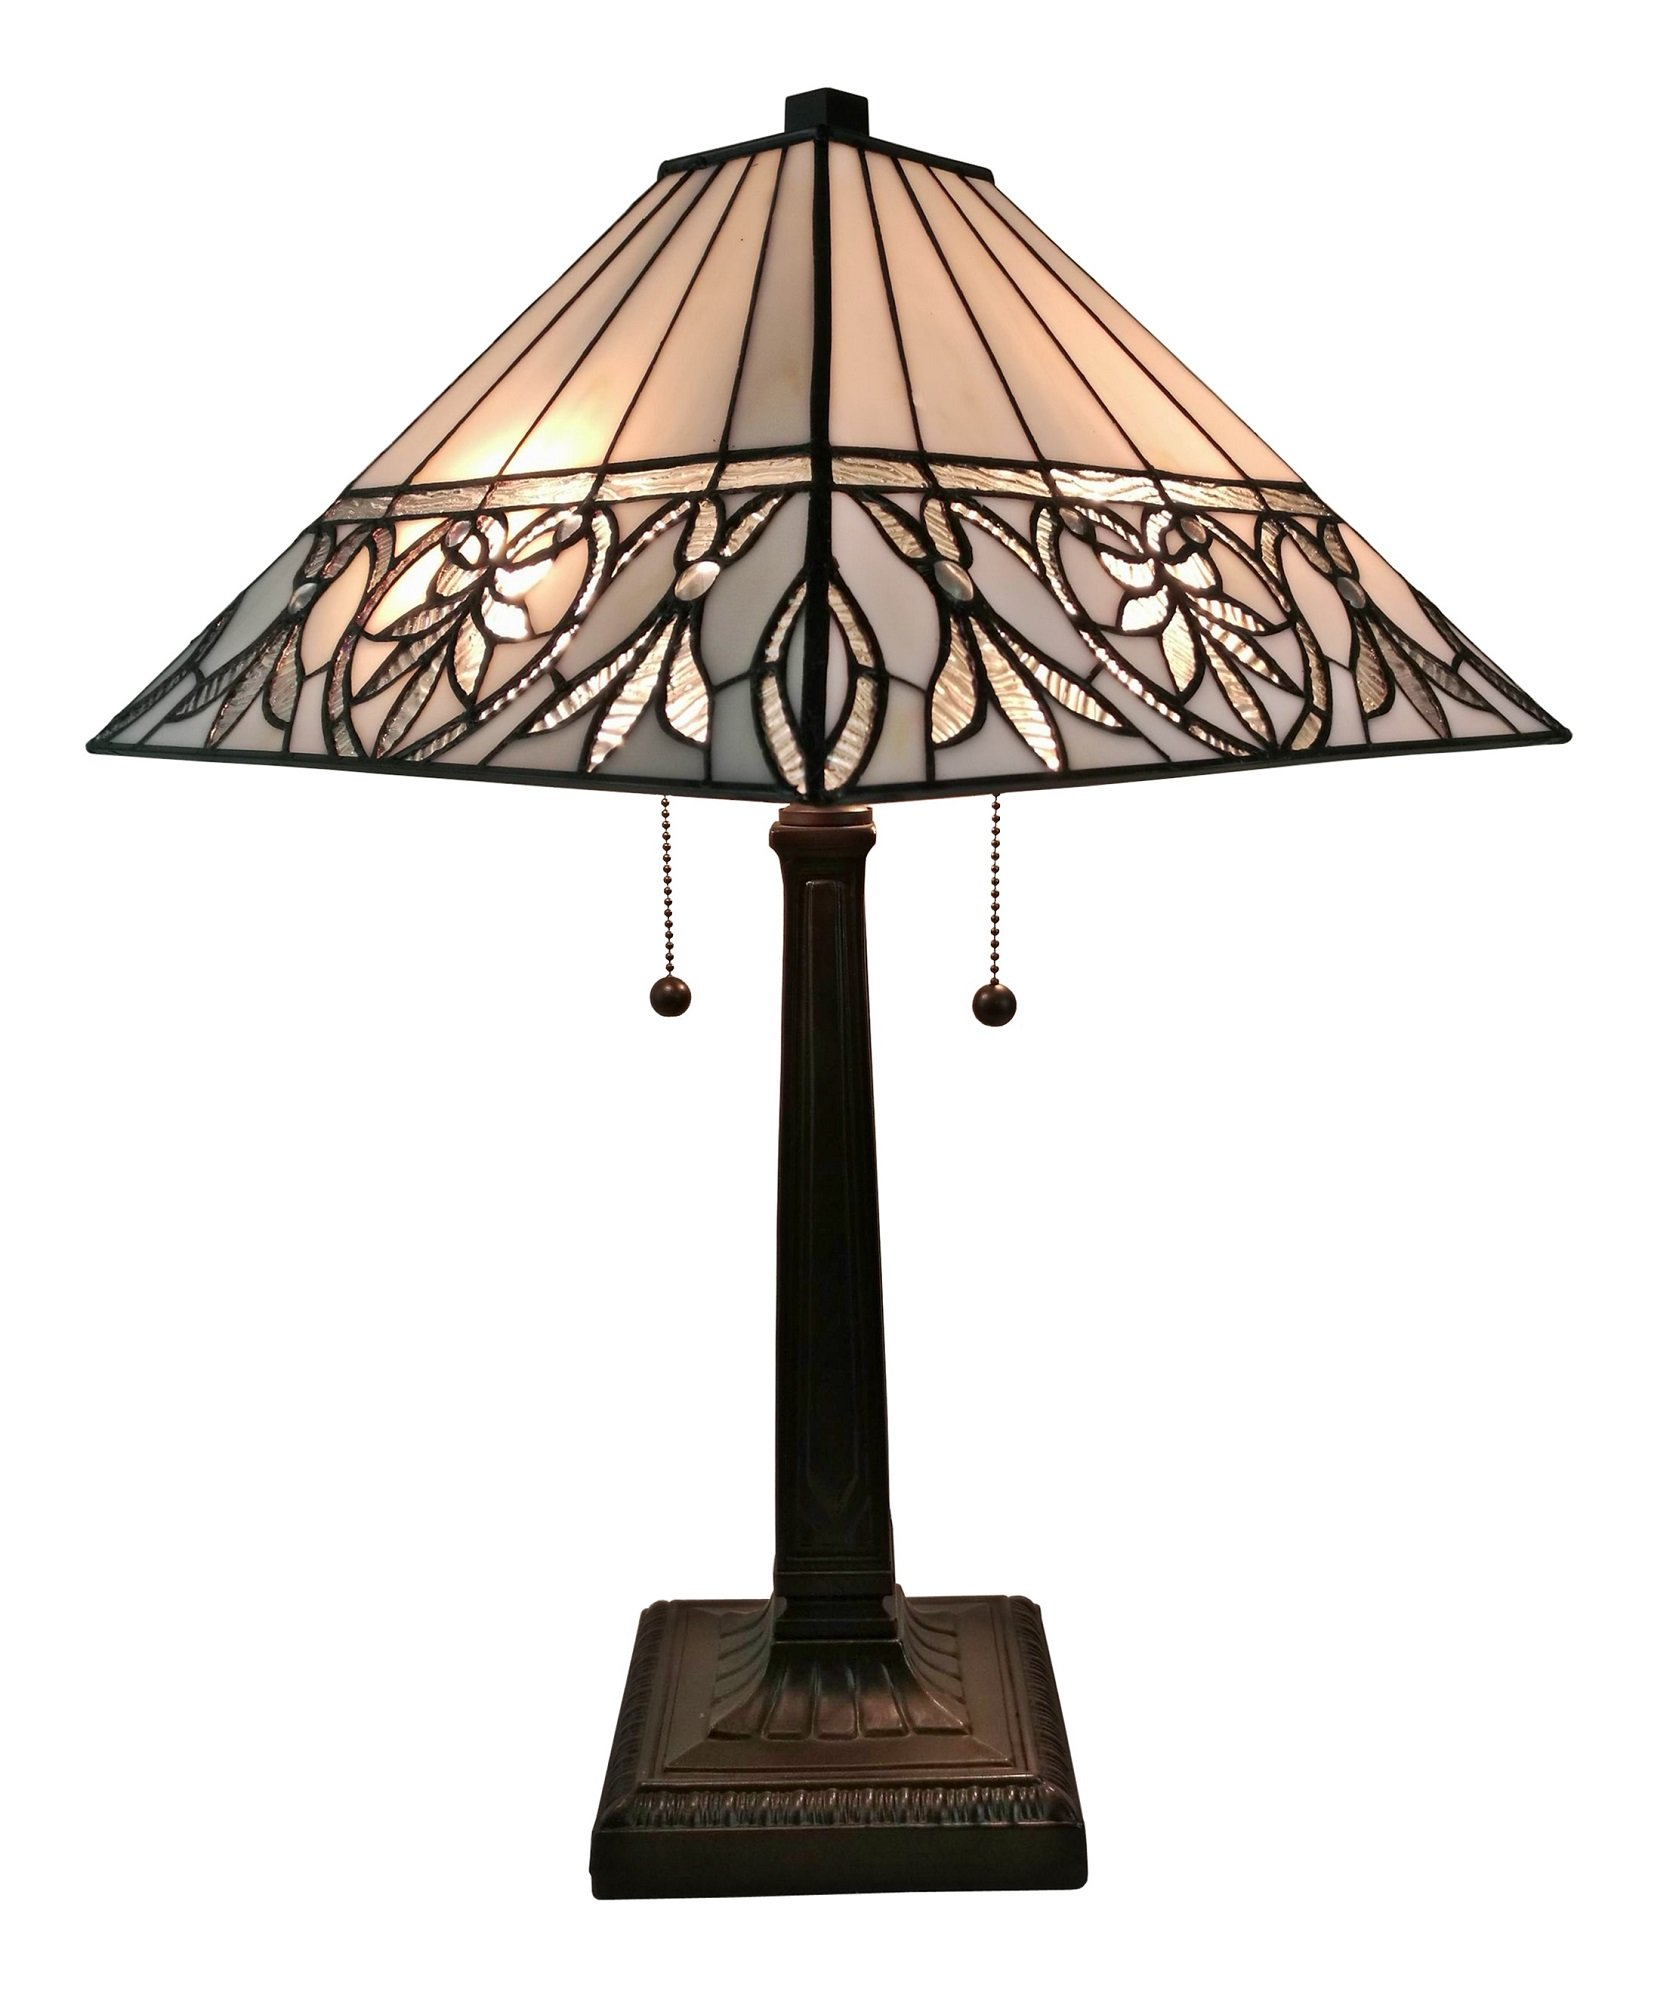 craftsman style lamps tiffany table lamp nautical accent quickview west elm light fixtures dale dragonfly room essentials marble tulip side console desk restoration hardware